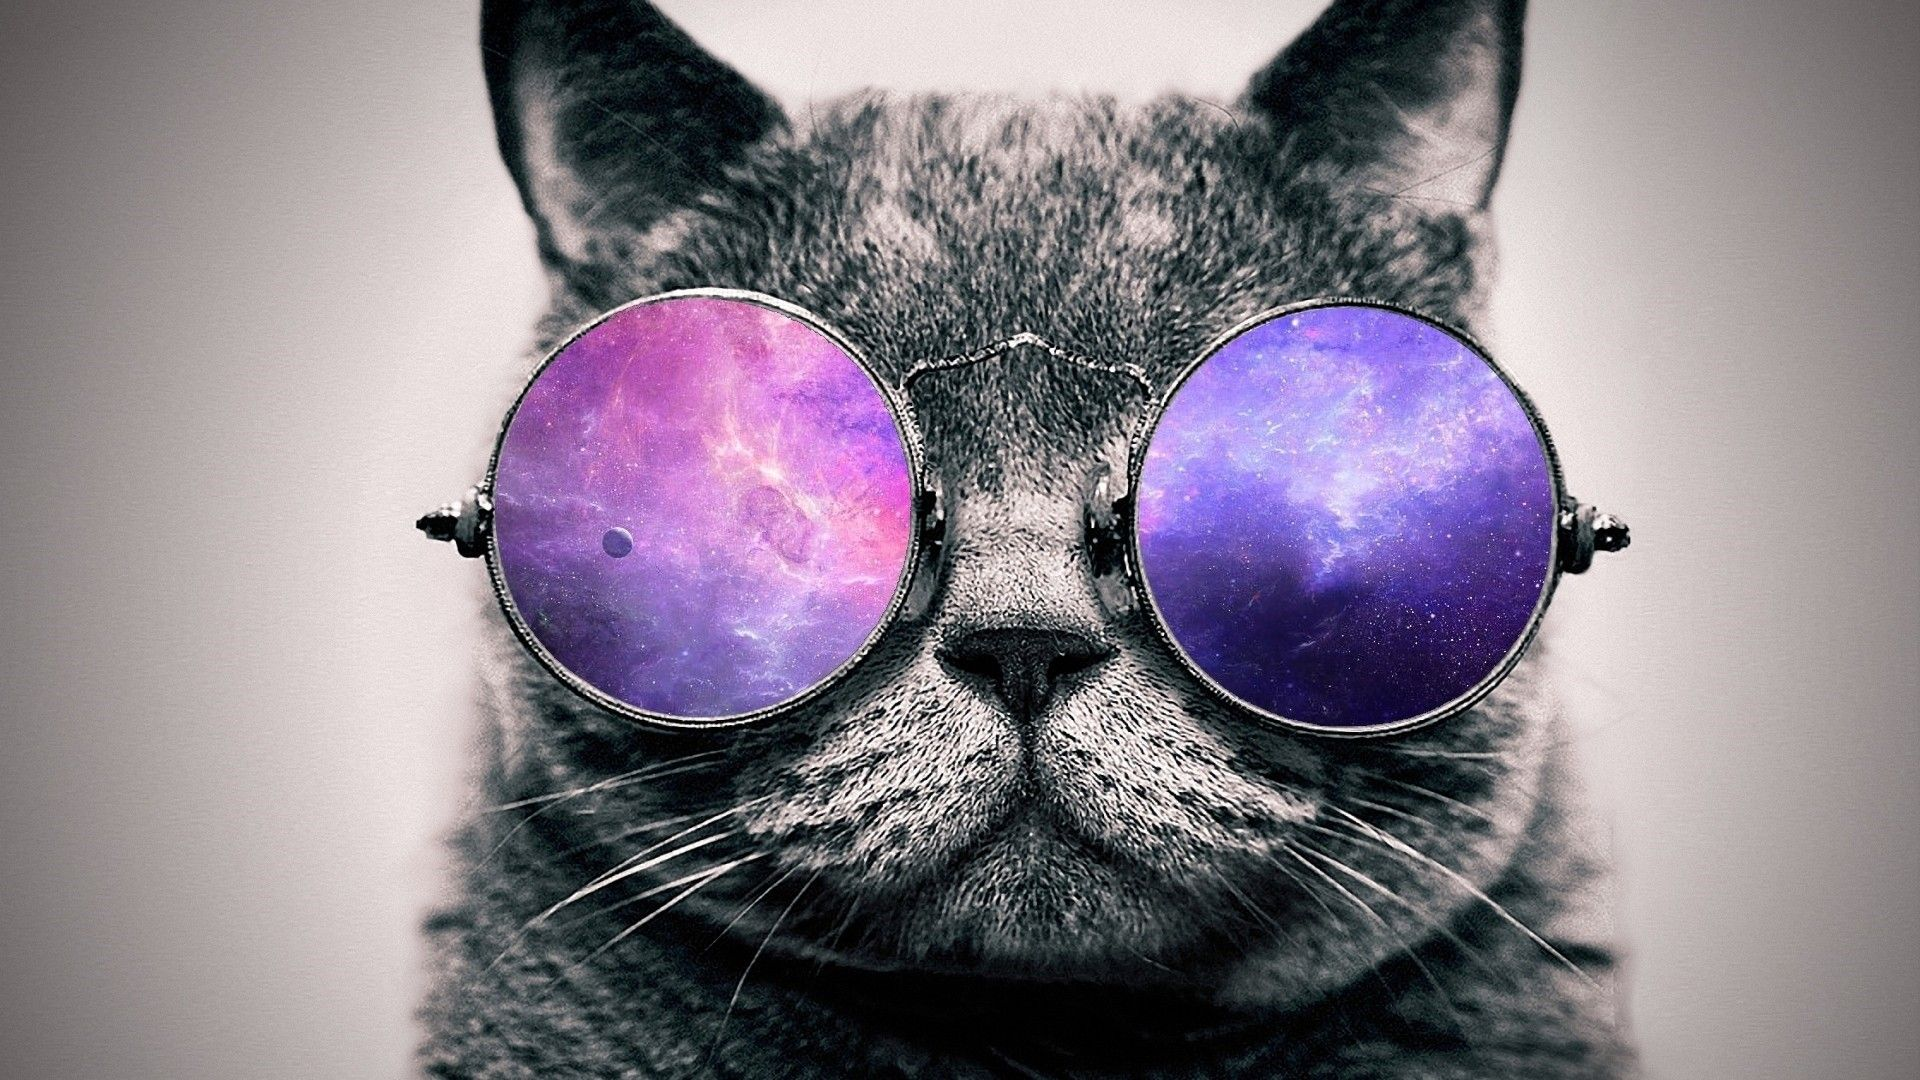 Pin de Joahnn Hills en Cute Animals Gato con lentes